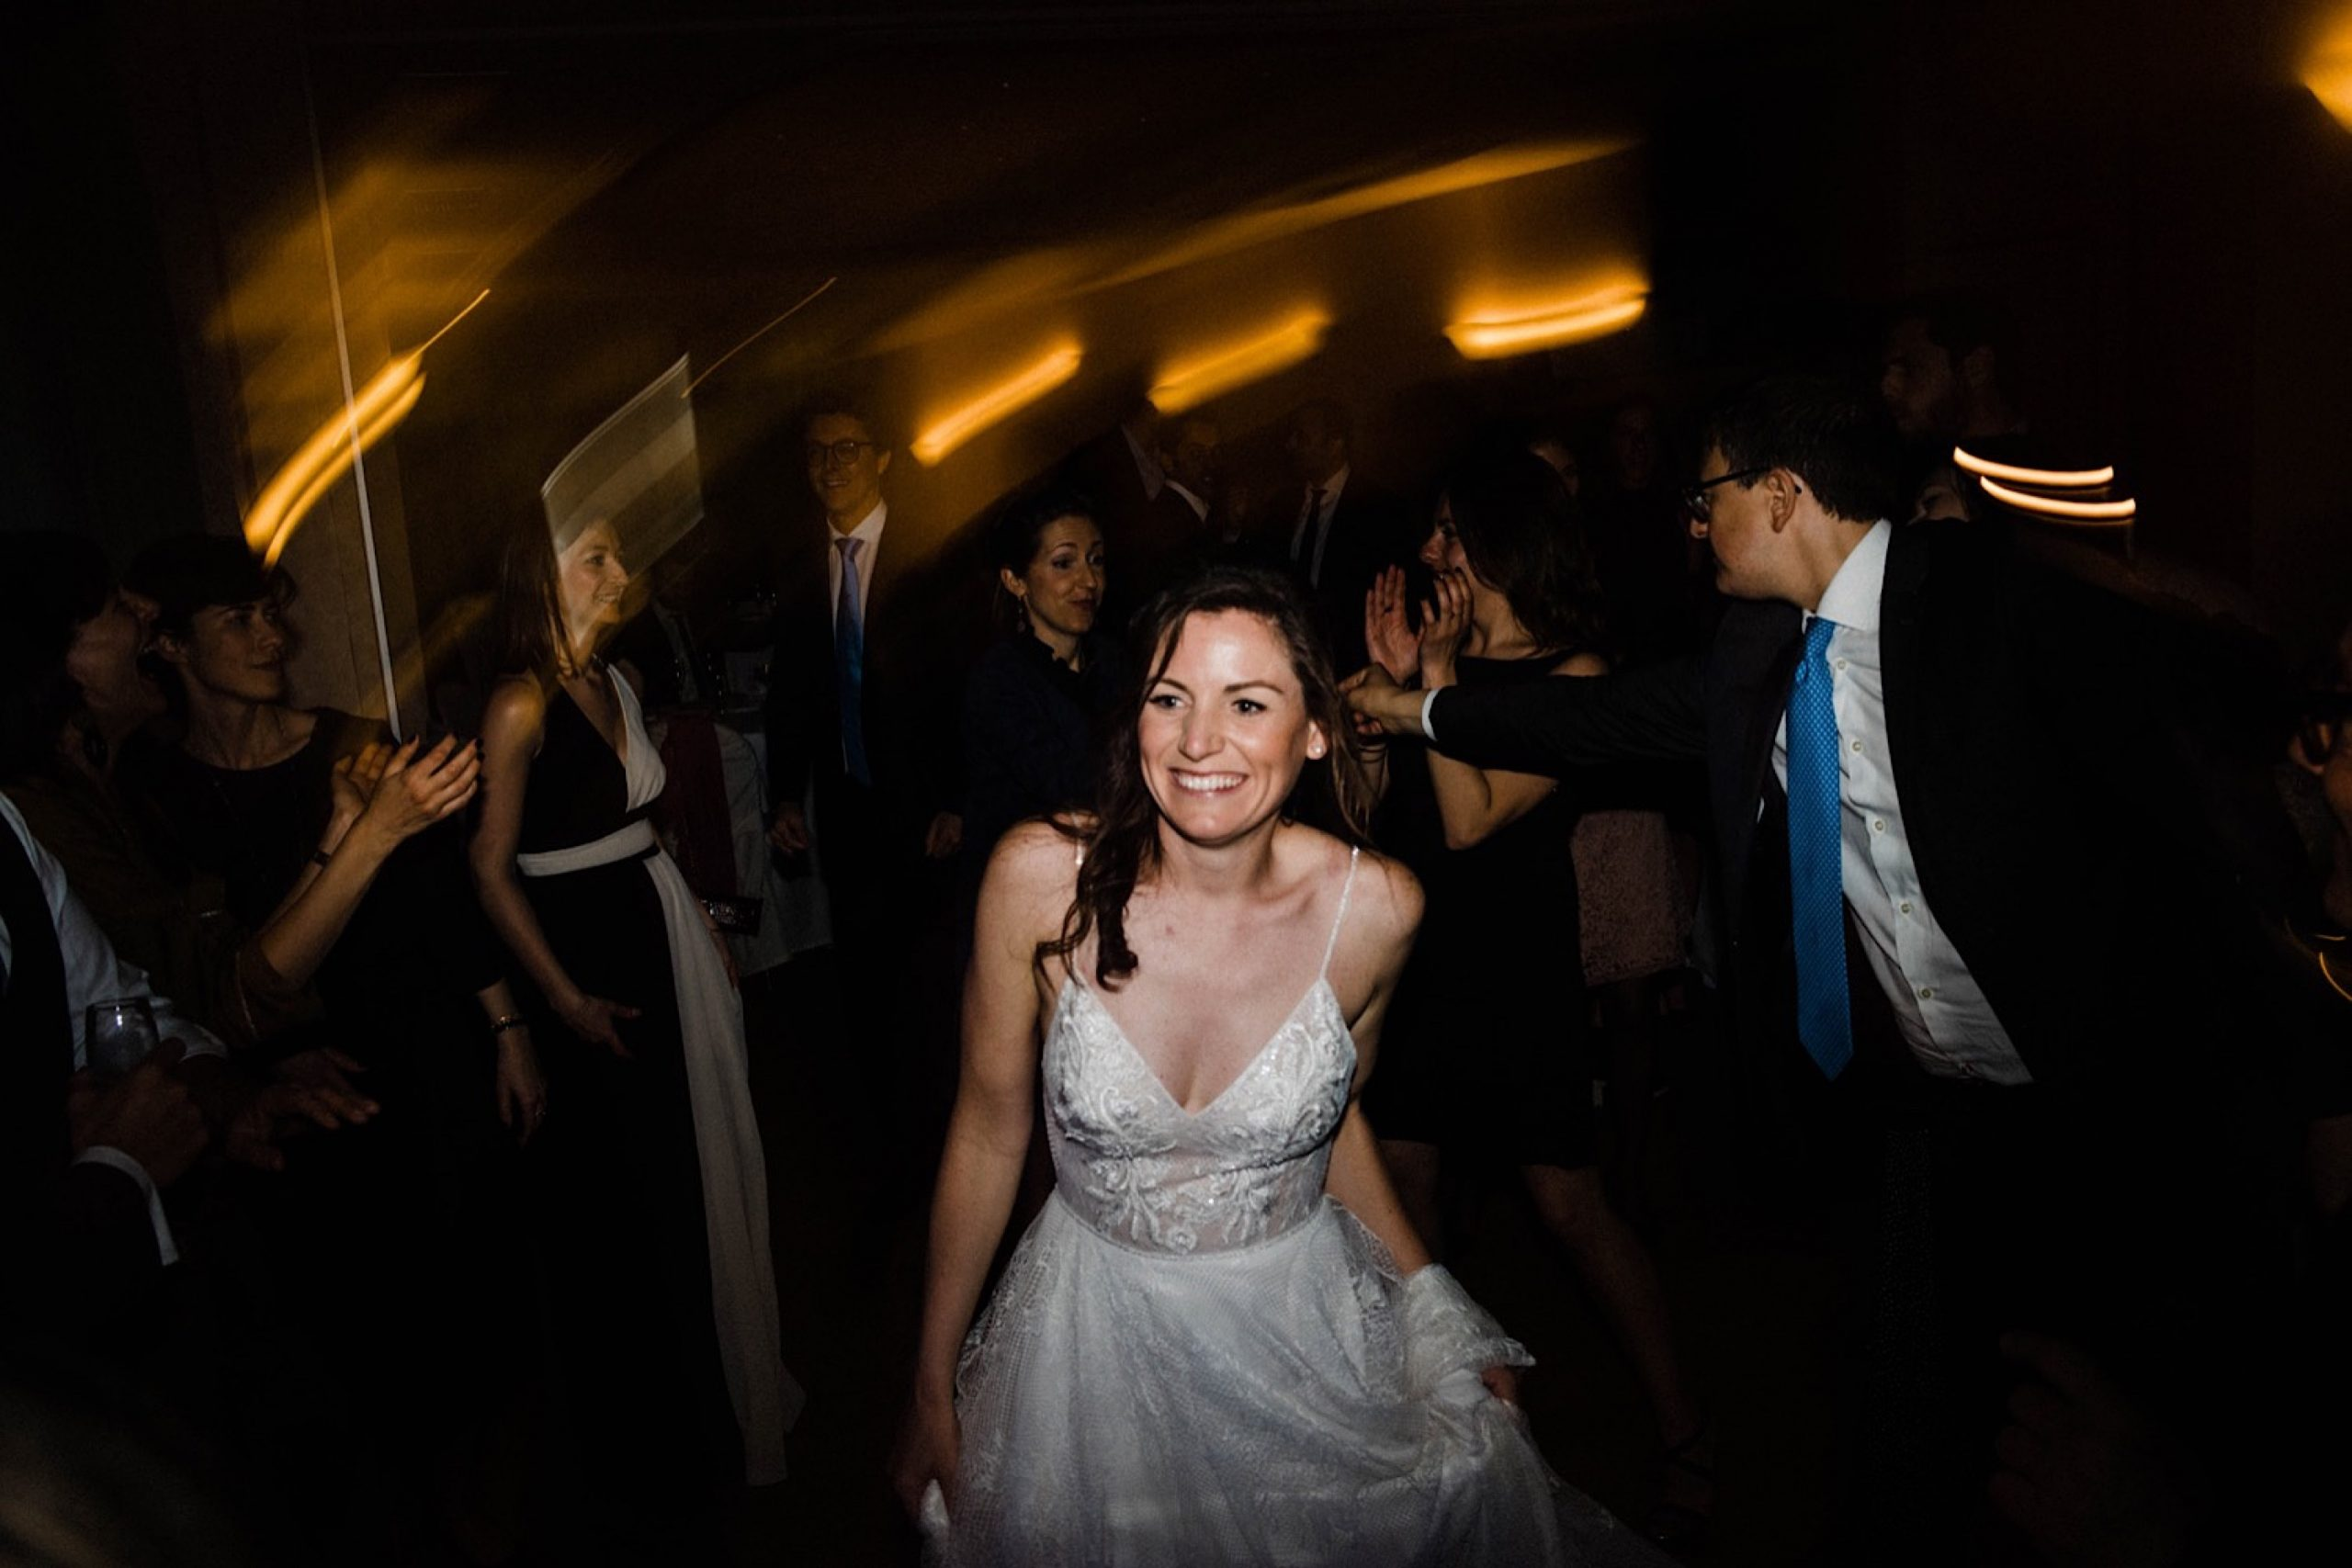 A photo of the bride smiling and dancing at her Italian Destination Wedding.